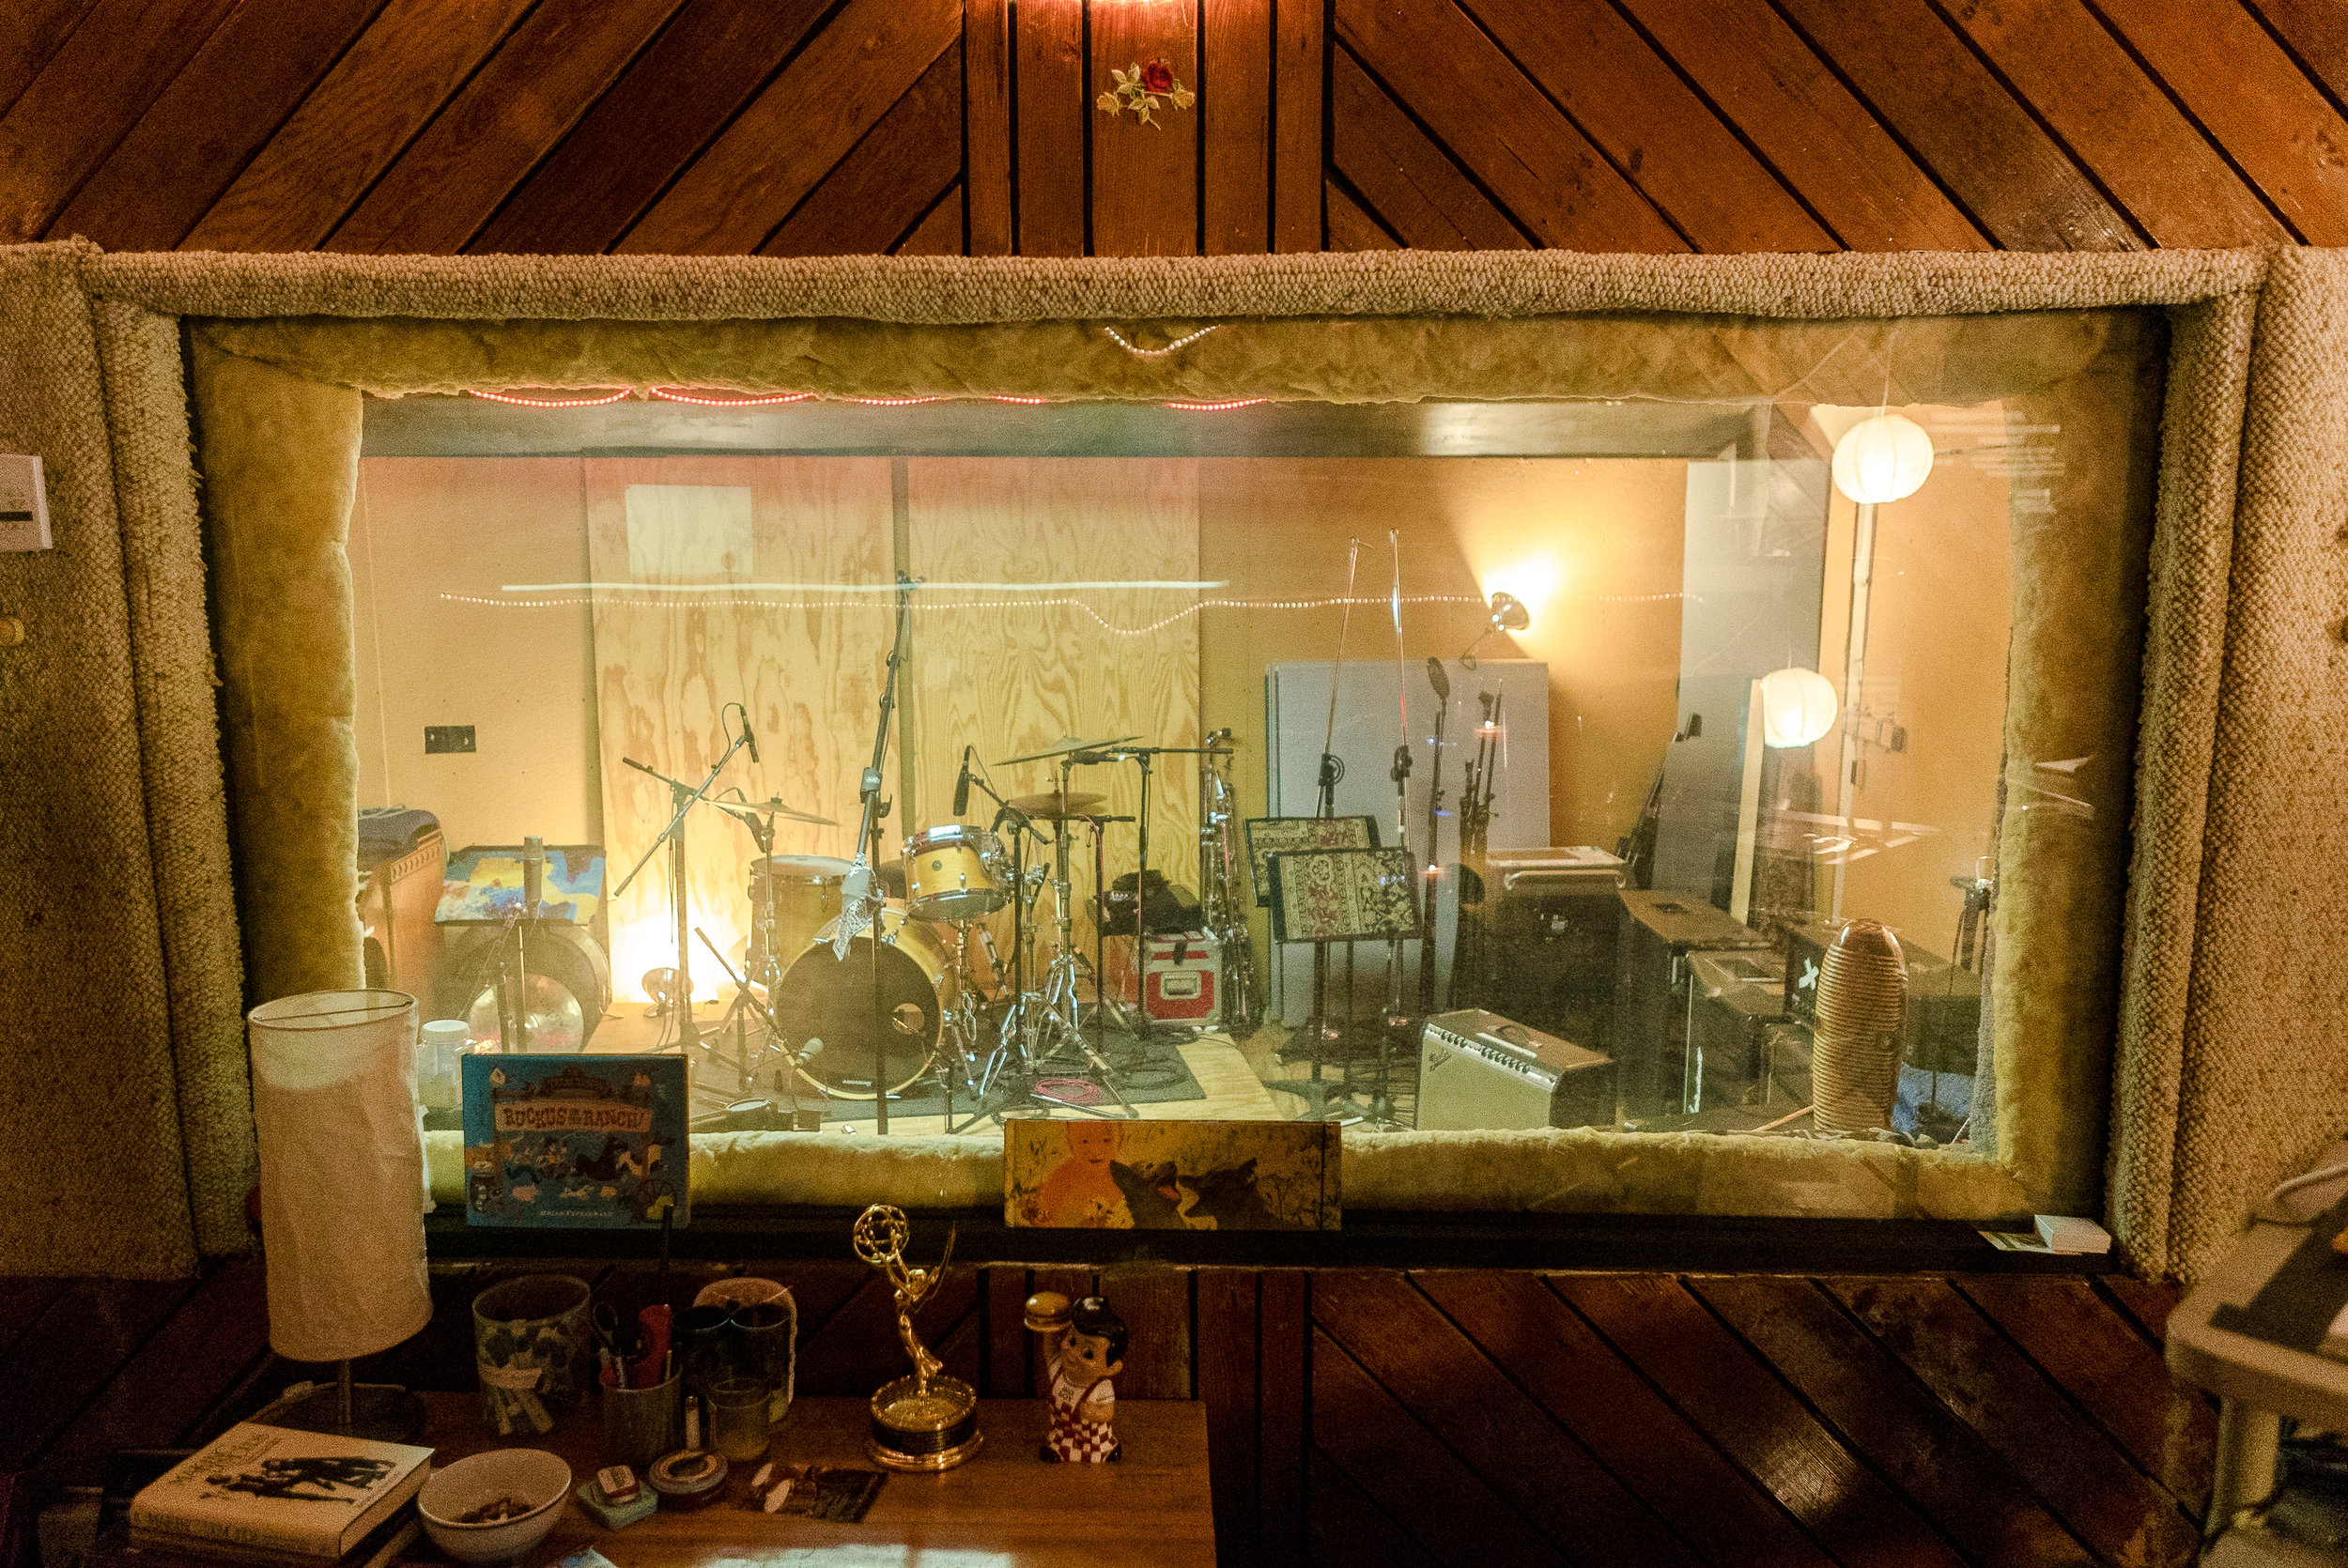 michael parnin_blacksound_drum room window.JPG